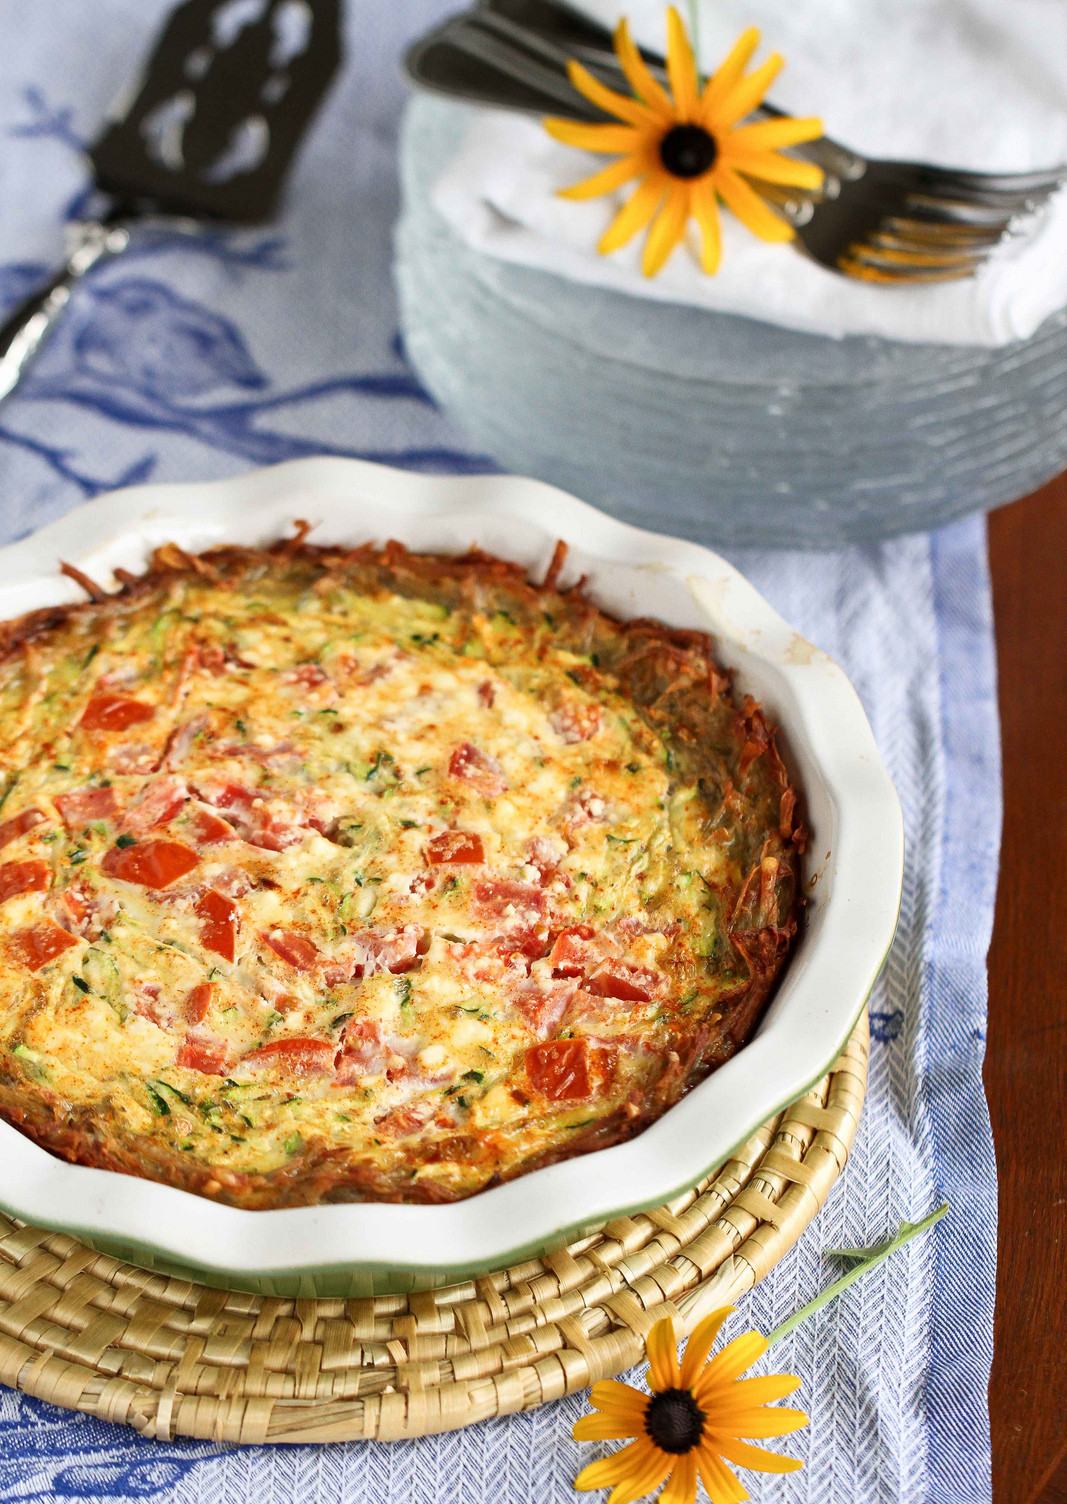 Vegetarian Quiche Recipe  22 Remarkable Recipes for Healthy fort Food